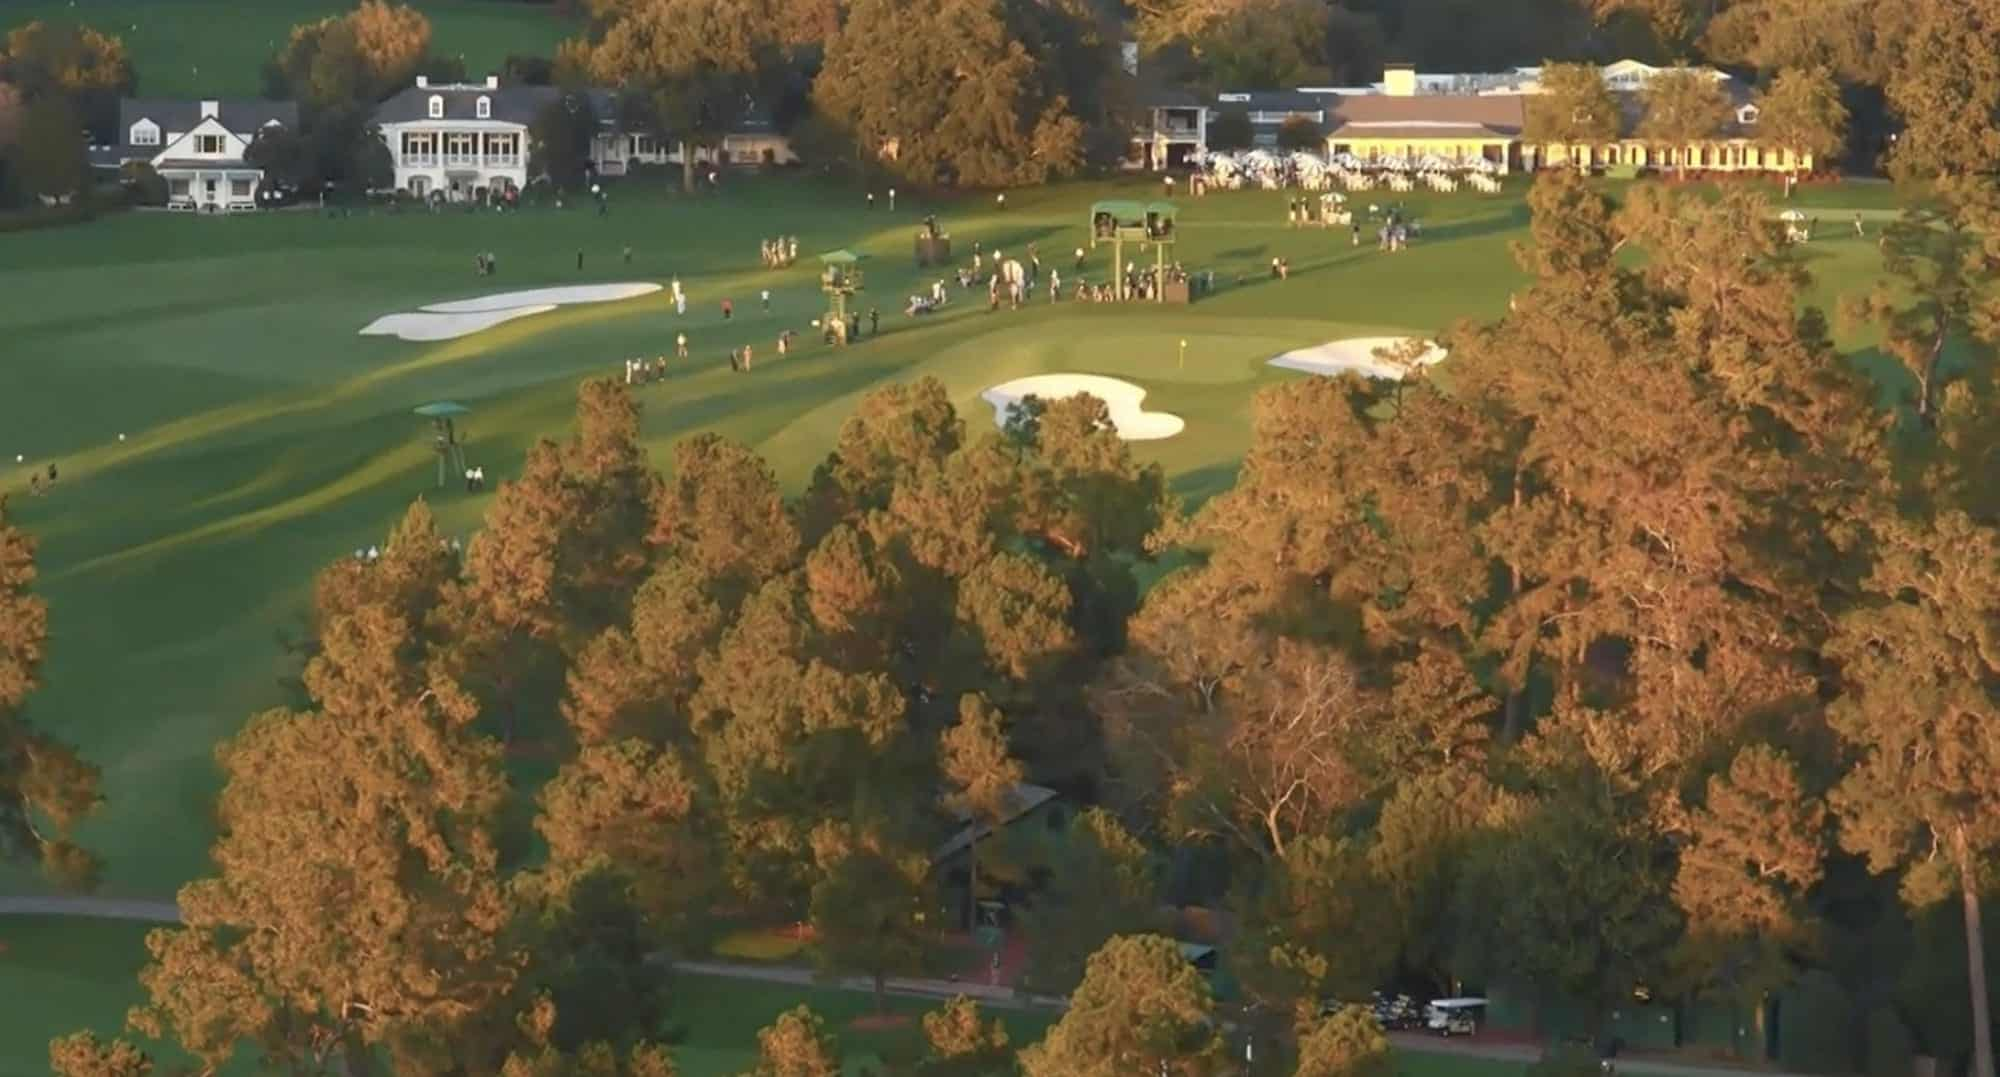 Drones at Augusta National show the Masters like never before